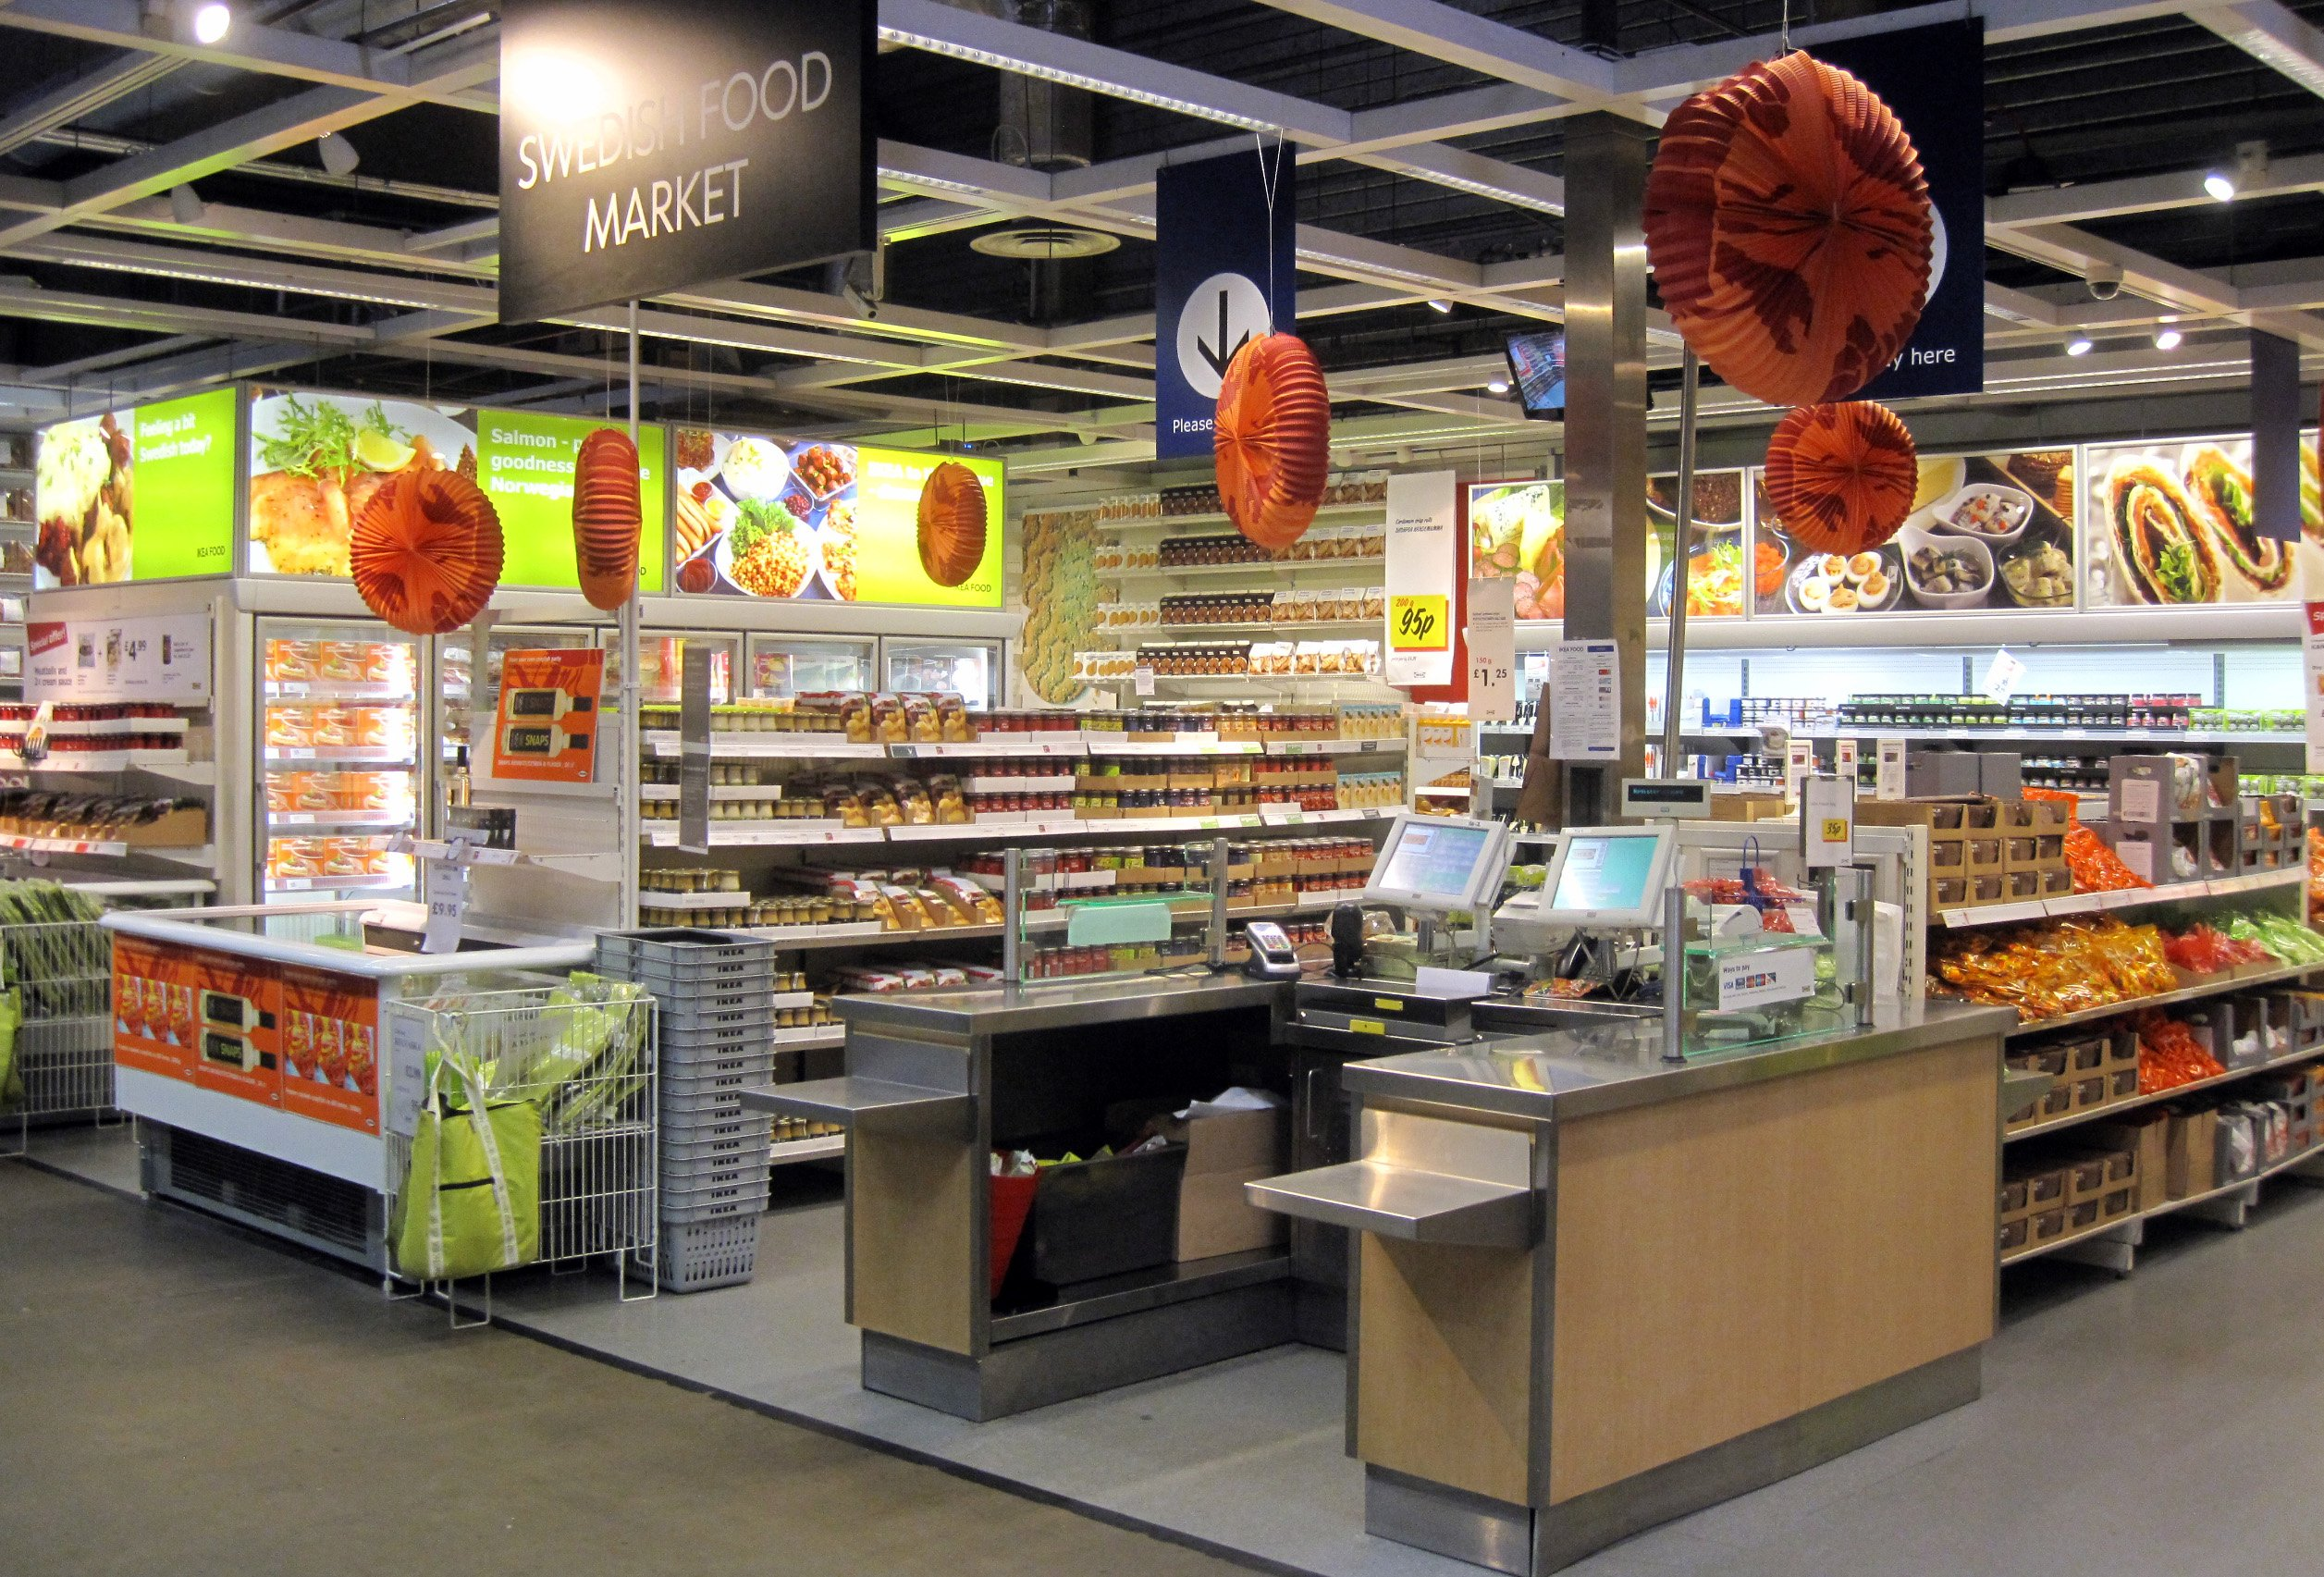 Galleries ispira blog for Ikea shops london